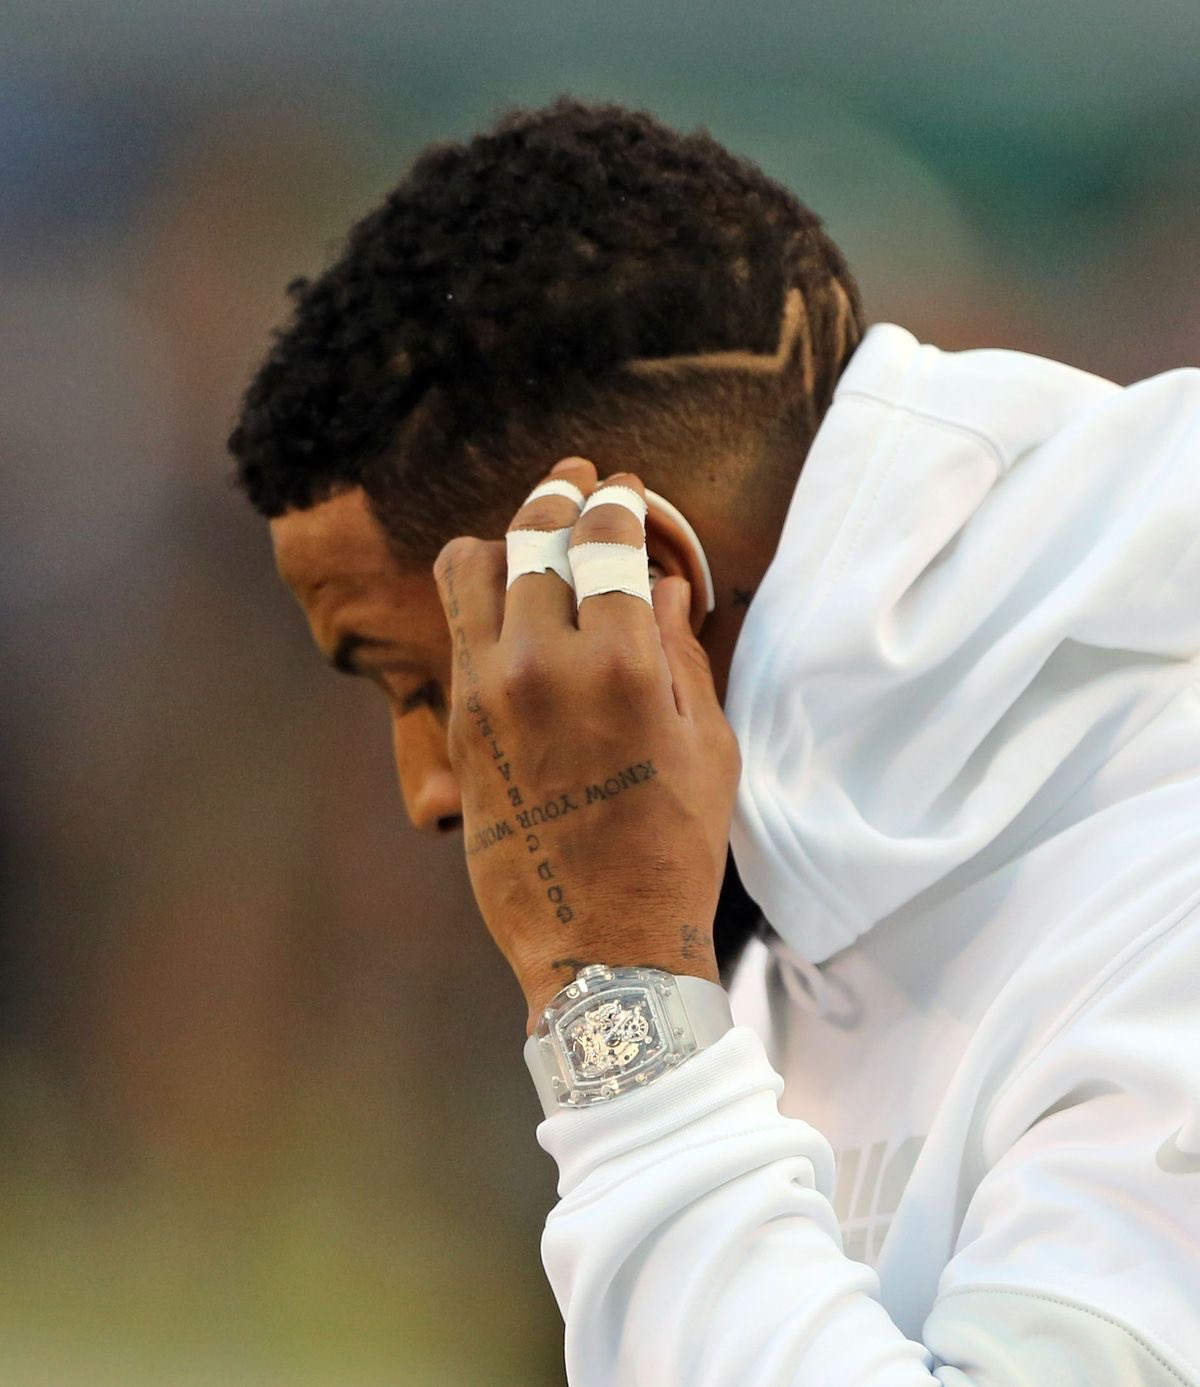 Odell Beckham Richard Mille RM 56-01 replica watch